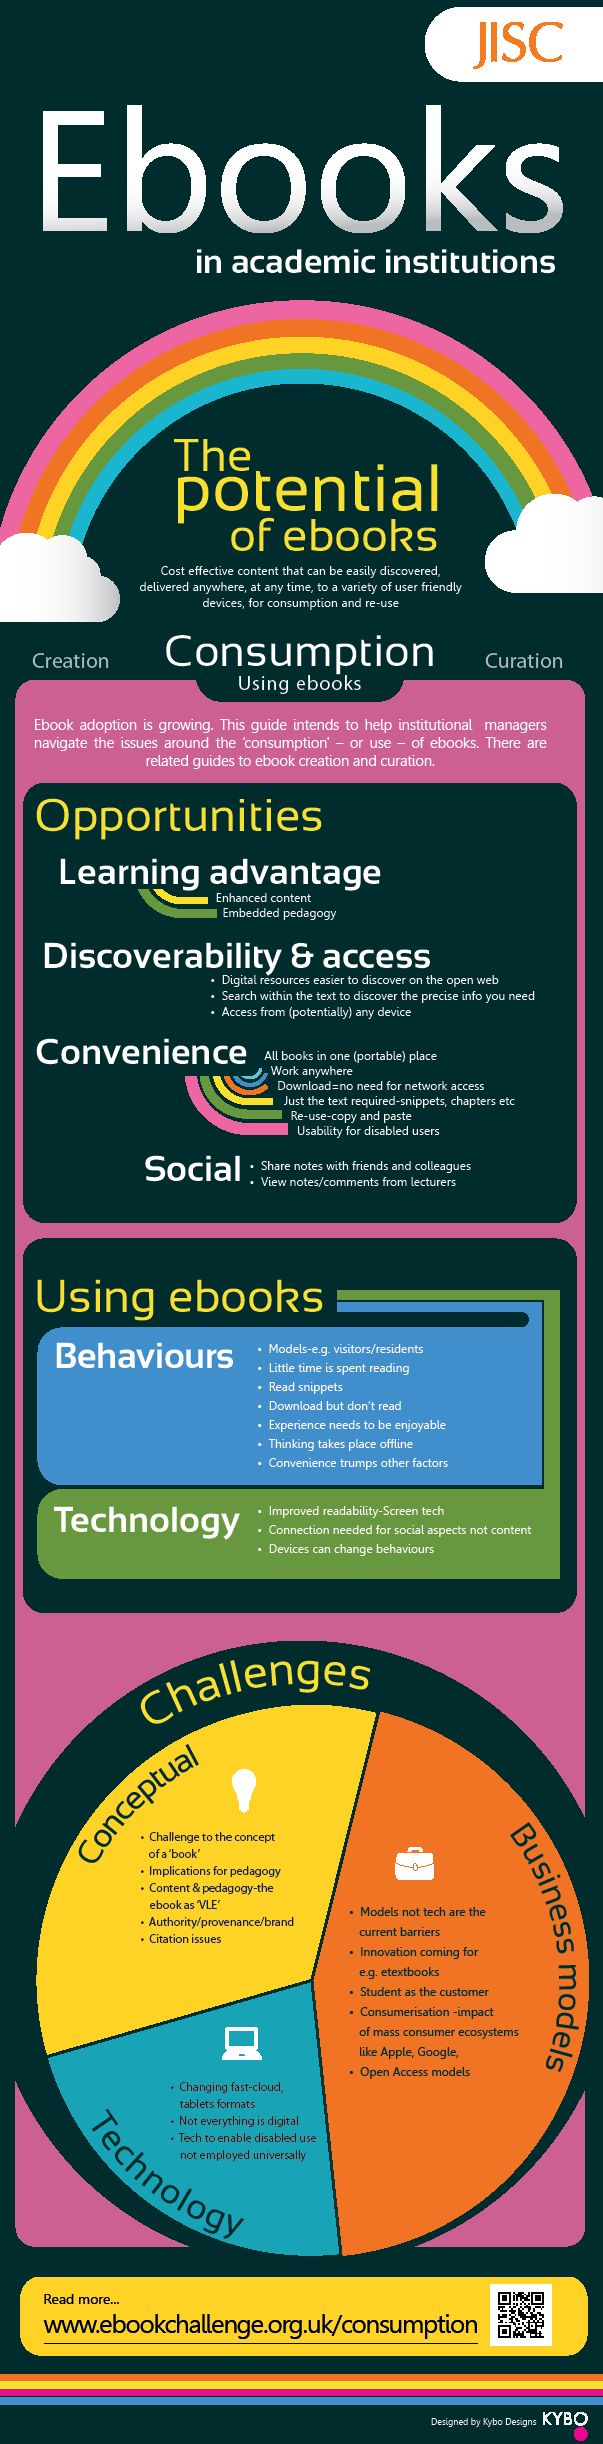 The Challenge Of Ebooks In Academic Institutions  Consumption